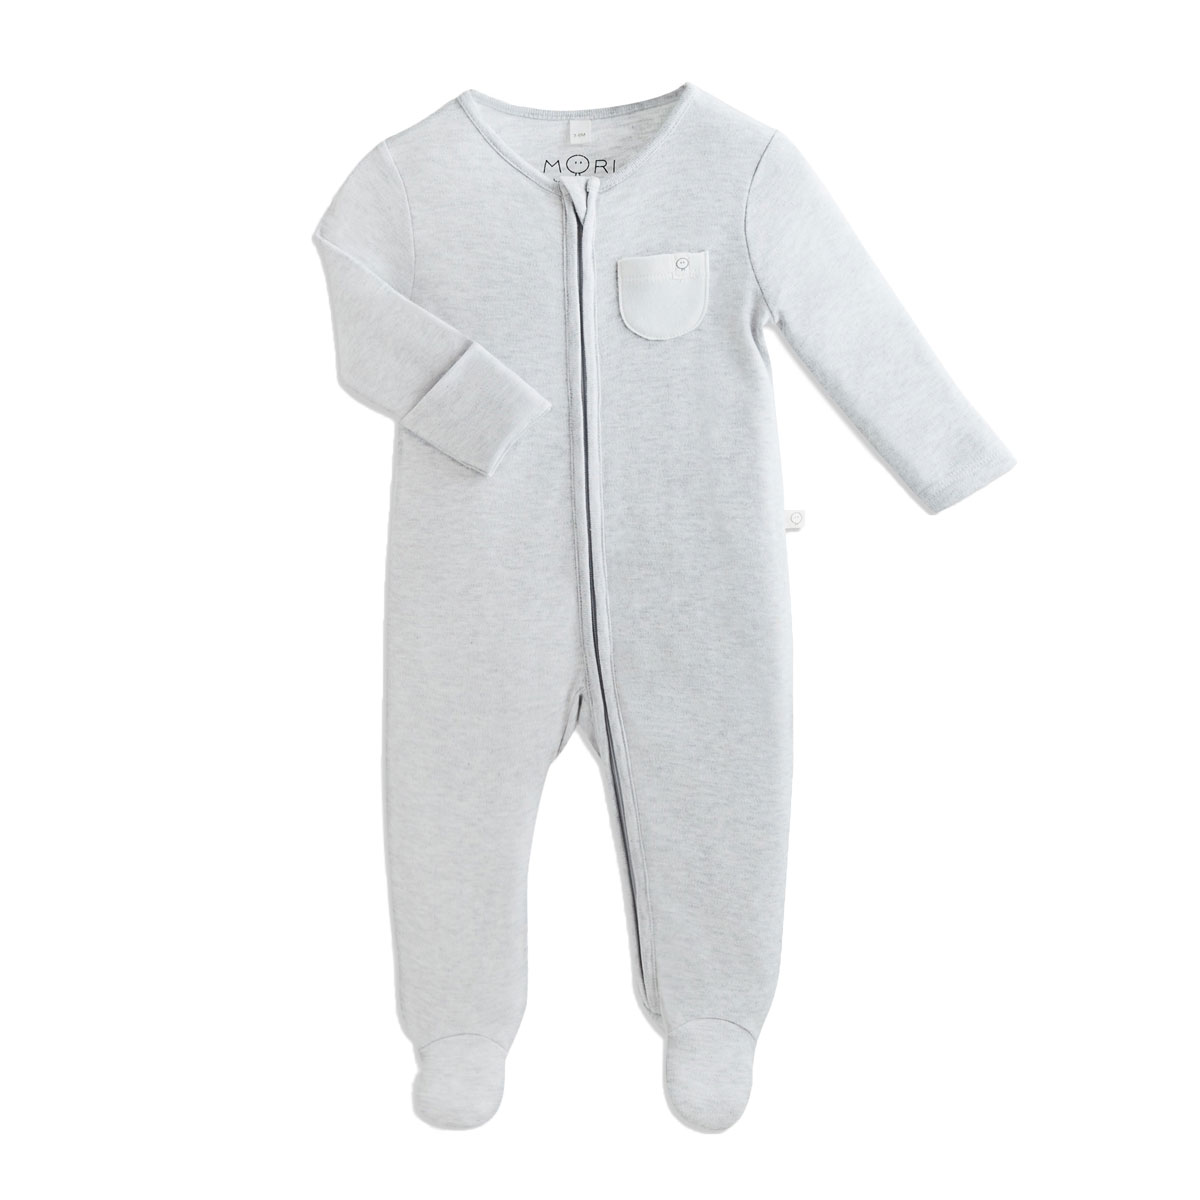 Mori Zip Up Sleepsuit in Grey